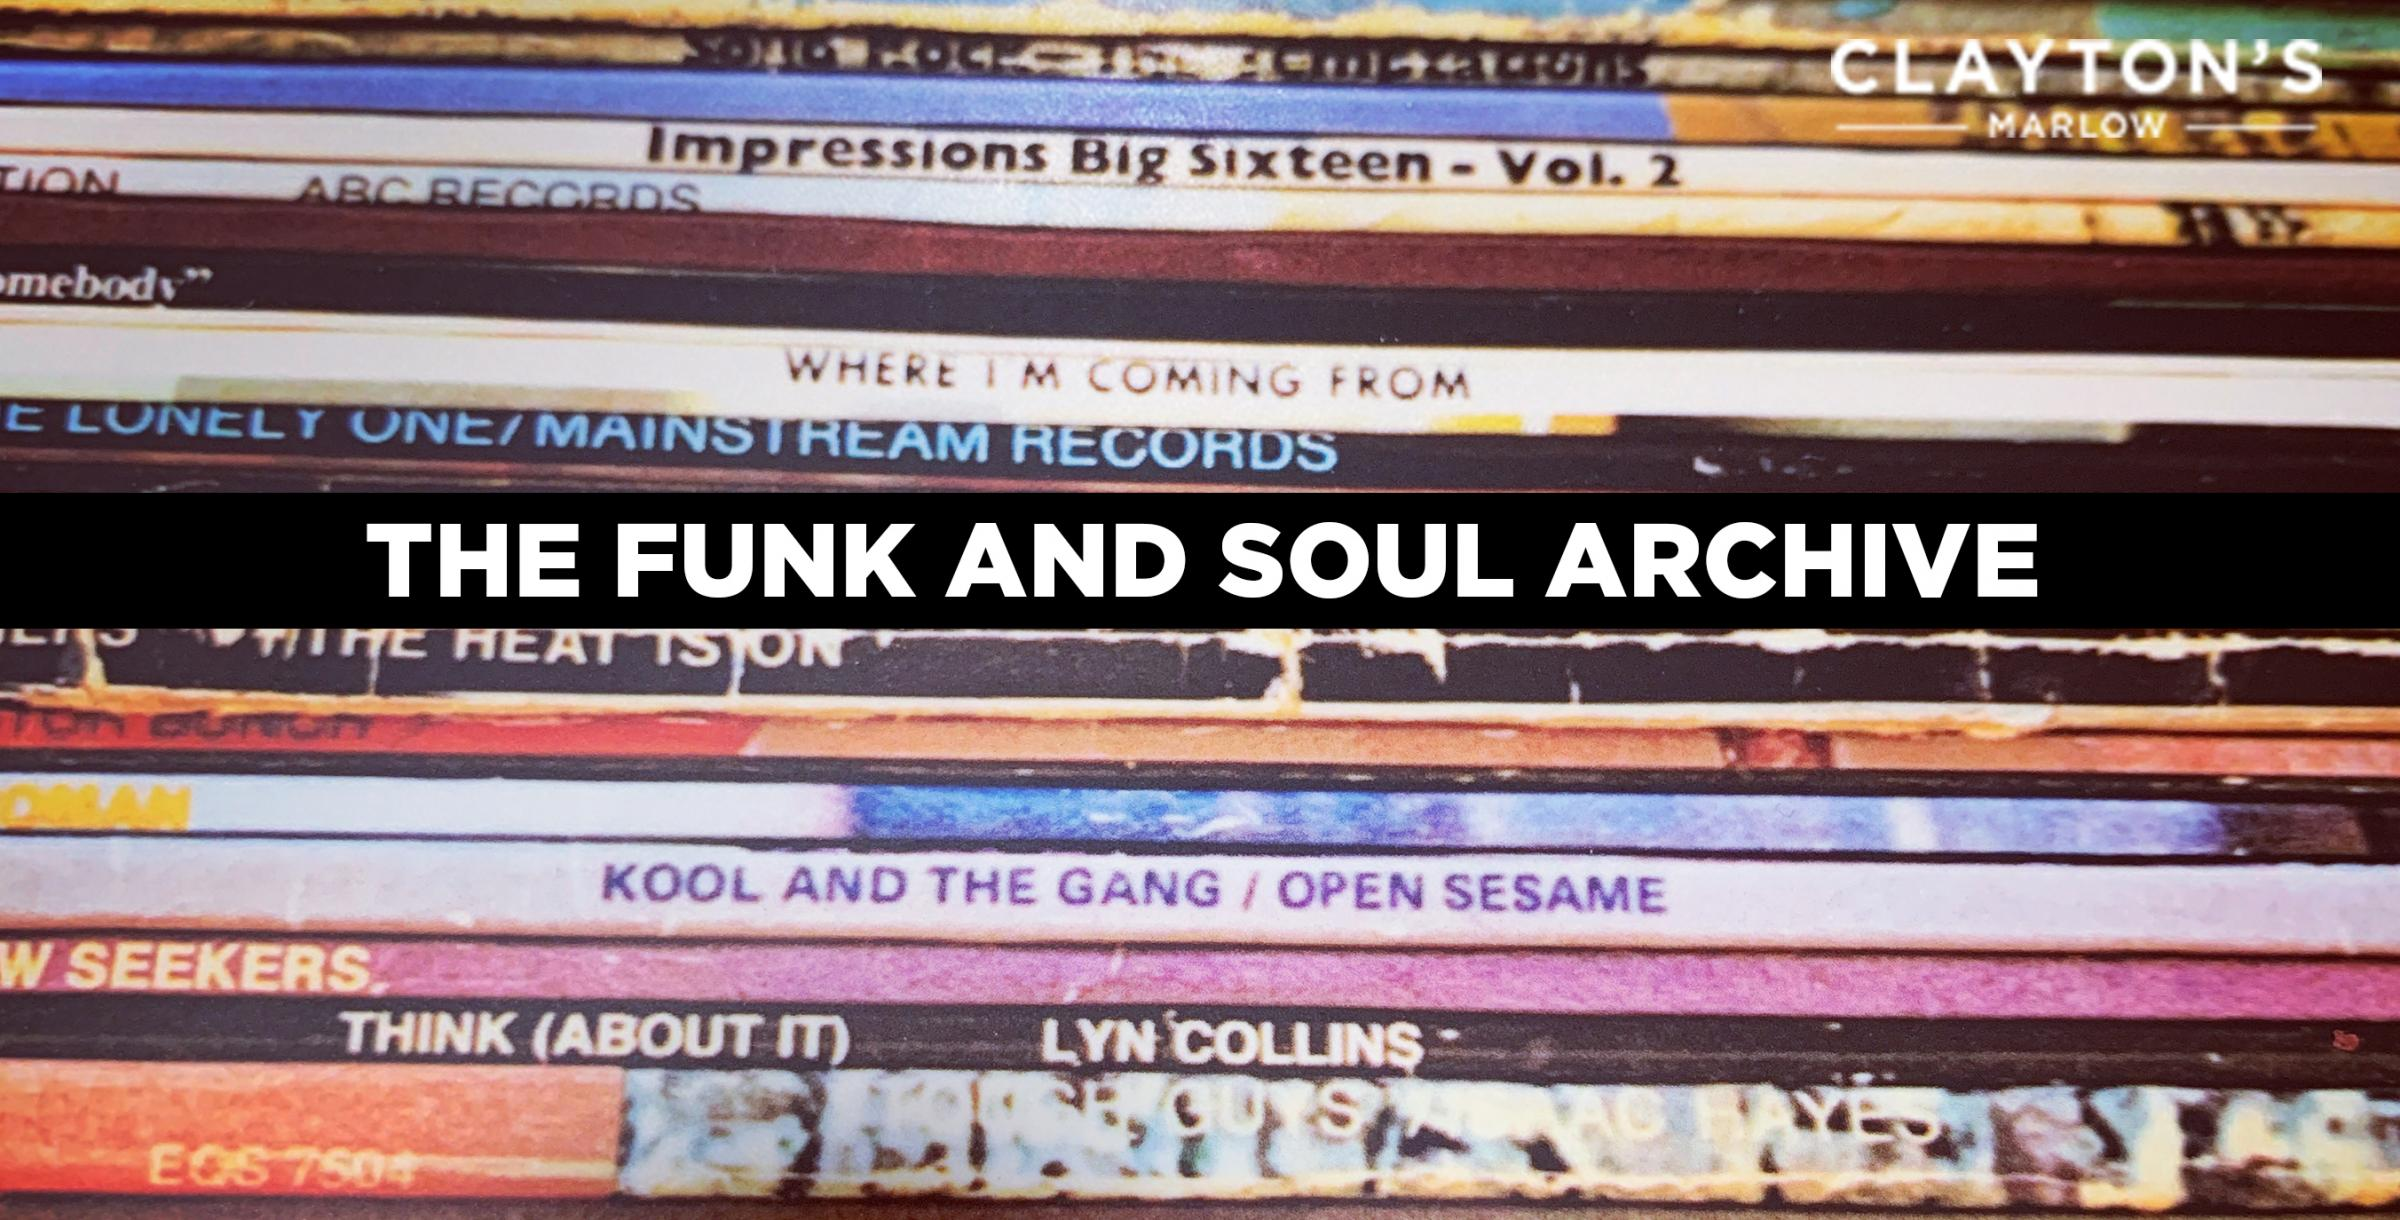 The Funk & Soul Archive at Clayton's Marlow